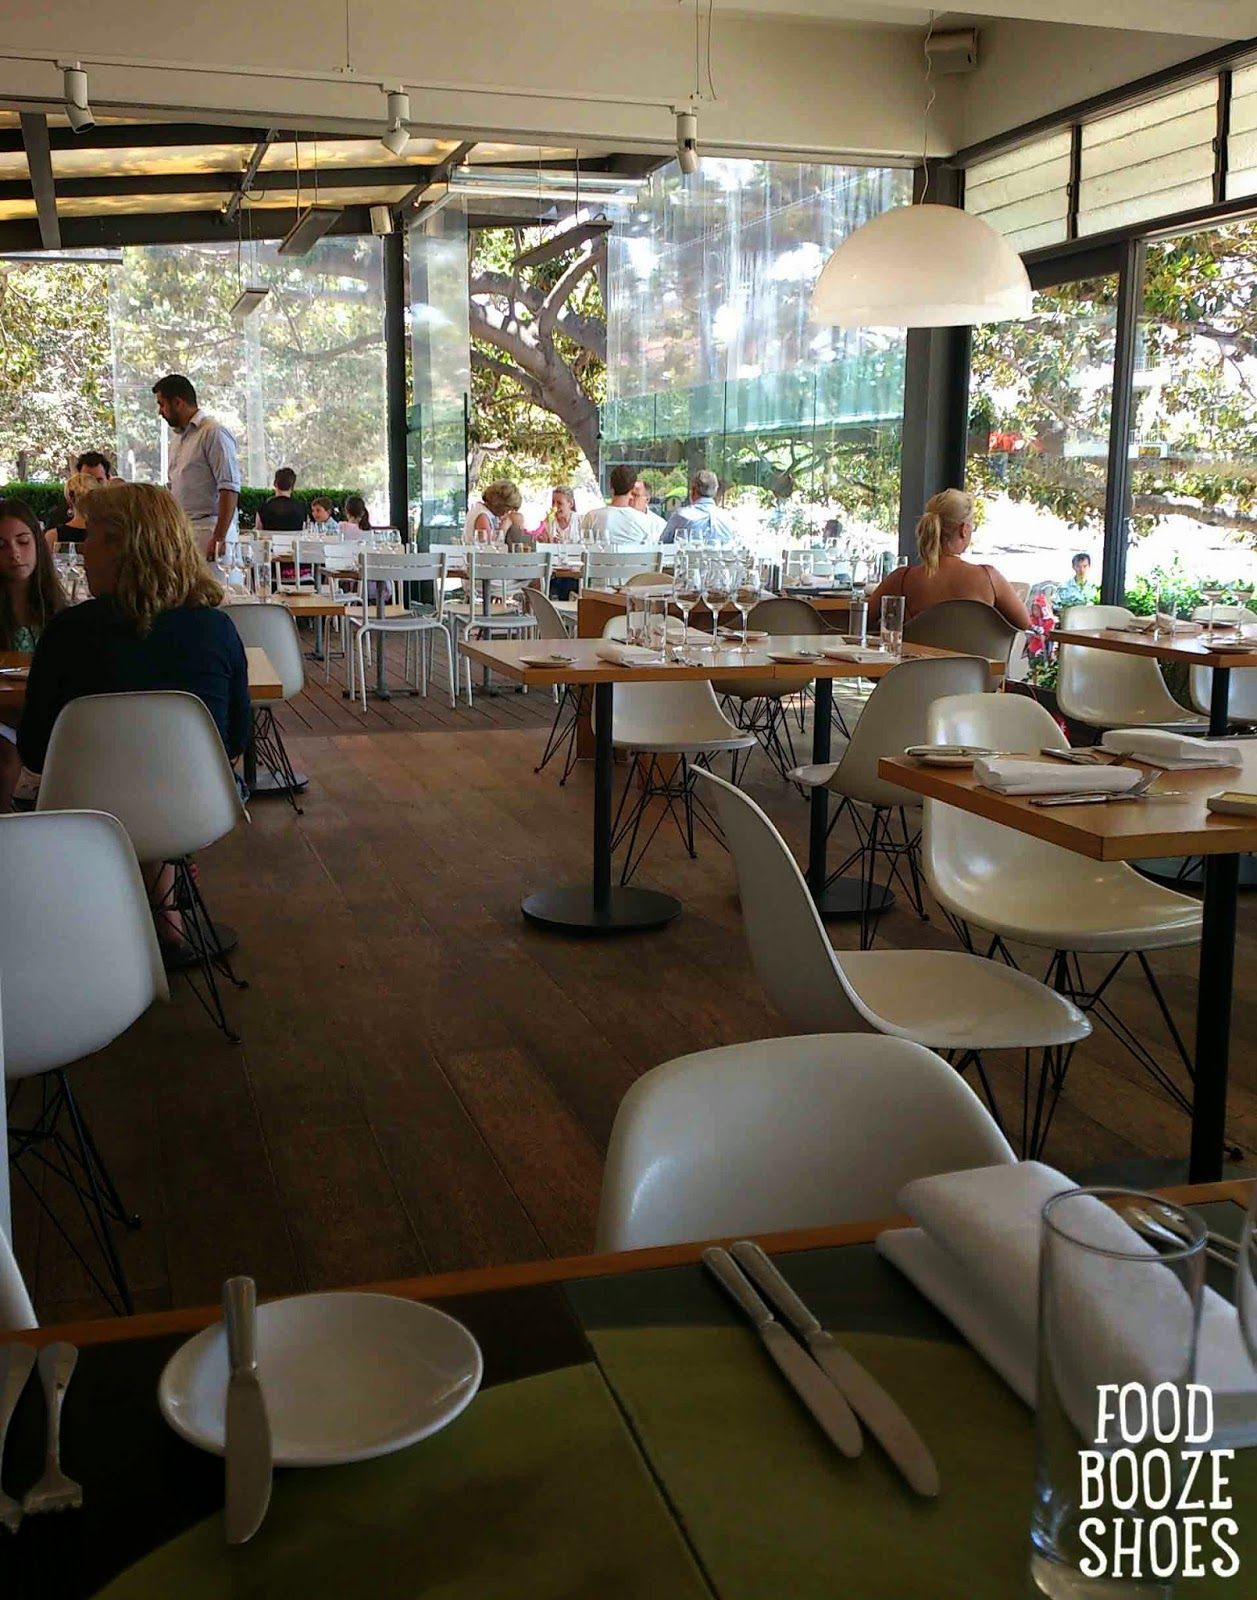 the public dining room | Food, booze and shoes: Open to the Public Dining Room